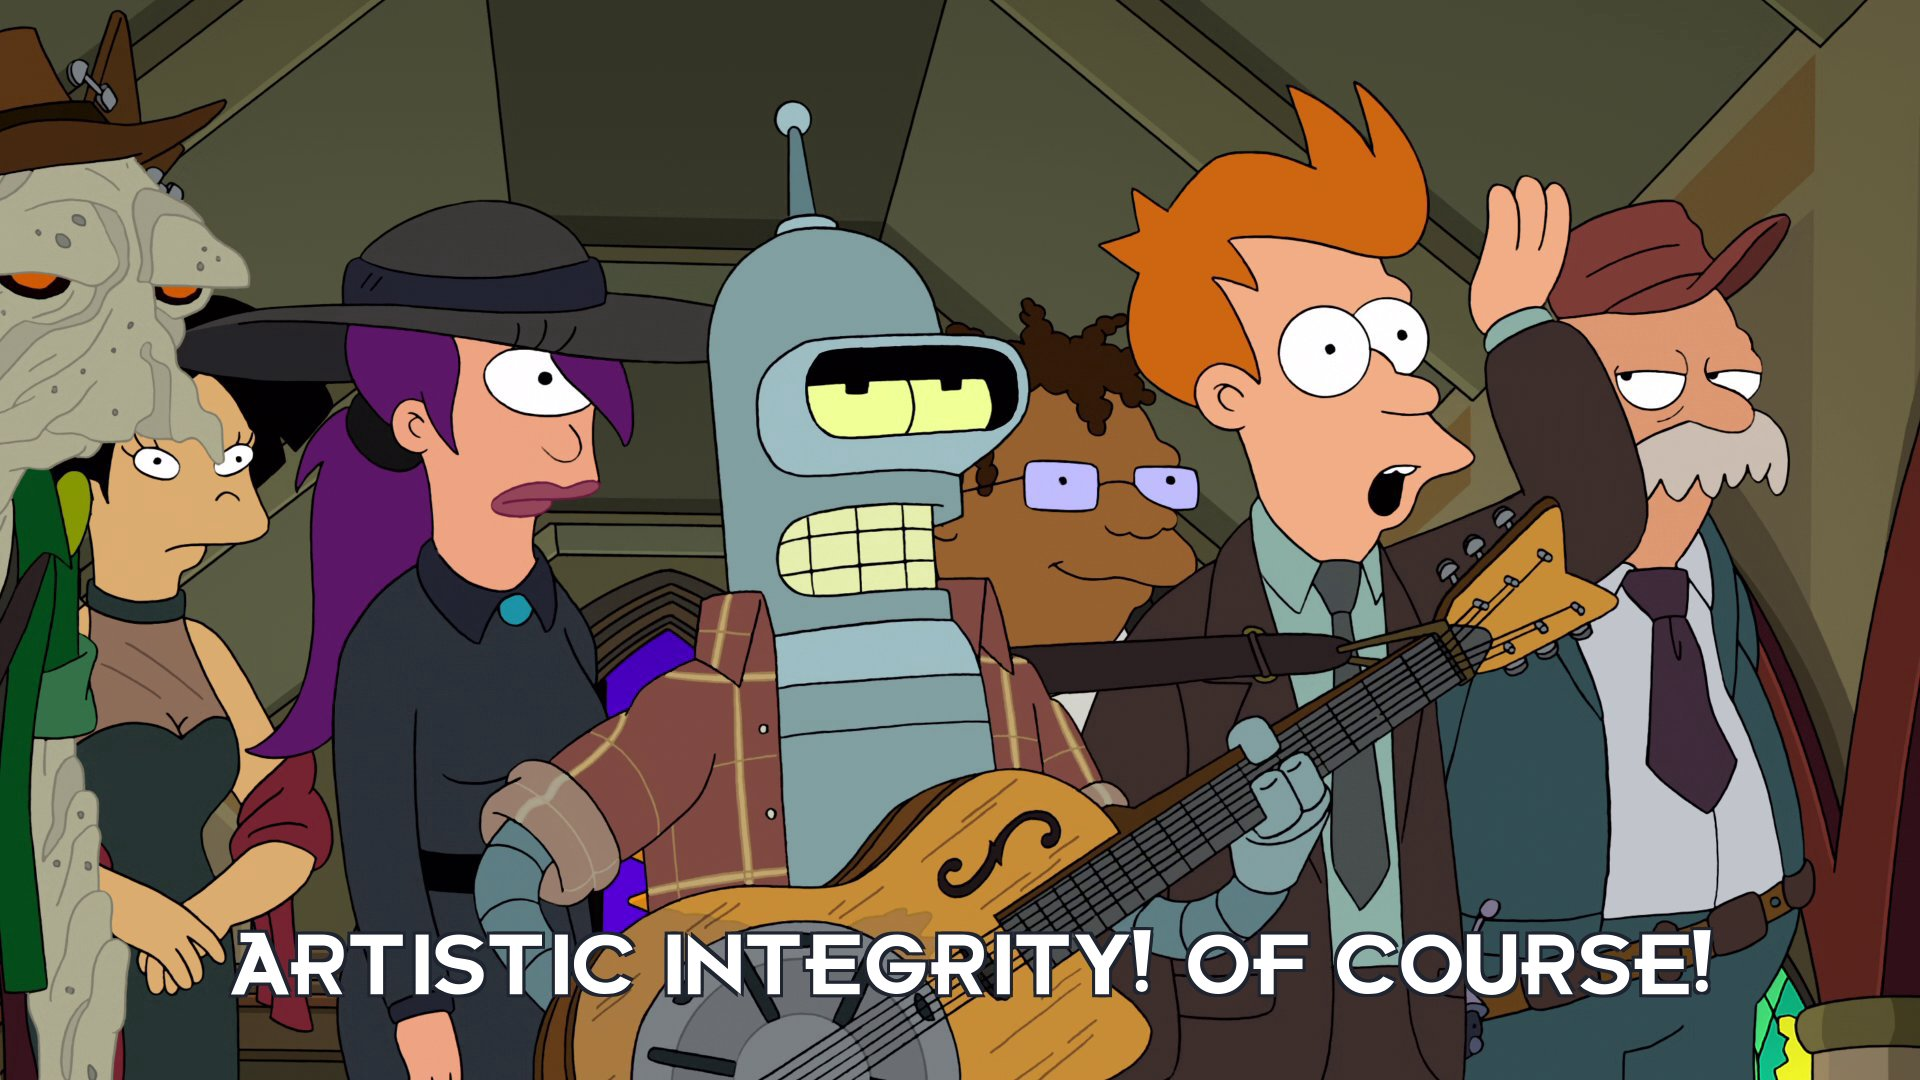 Philip J Fry: Artistic integrity! Of course!